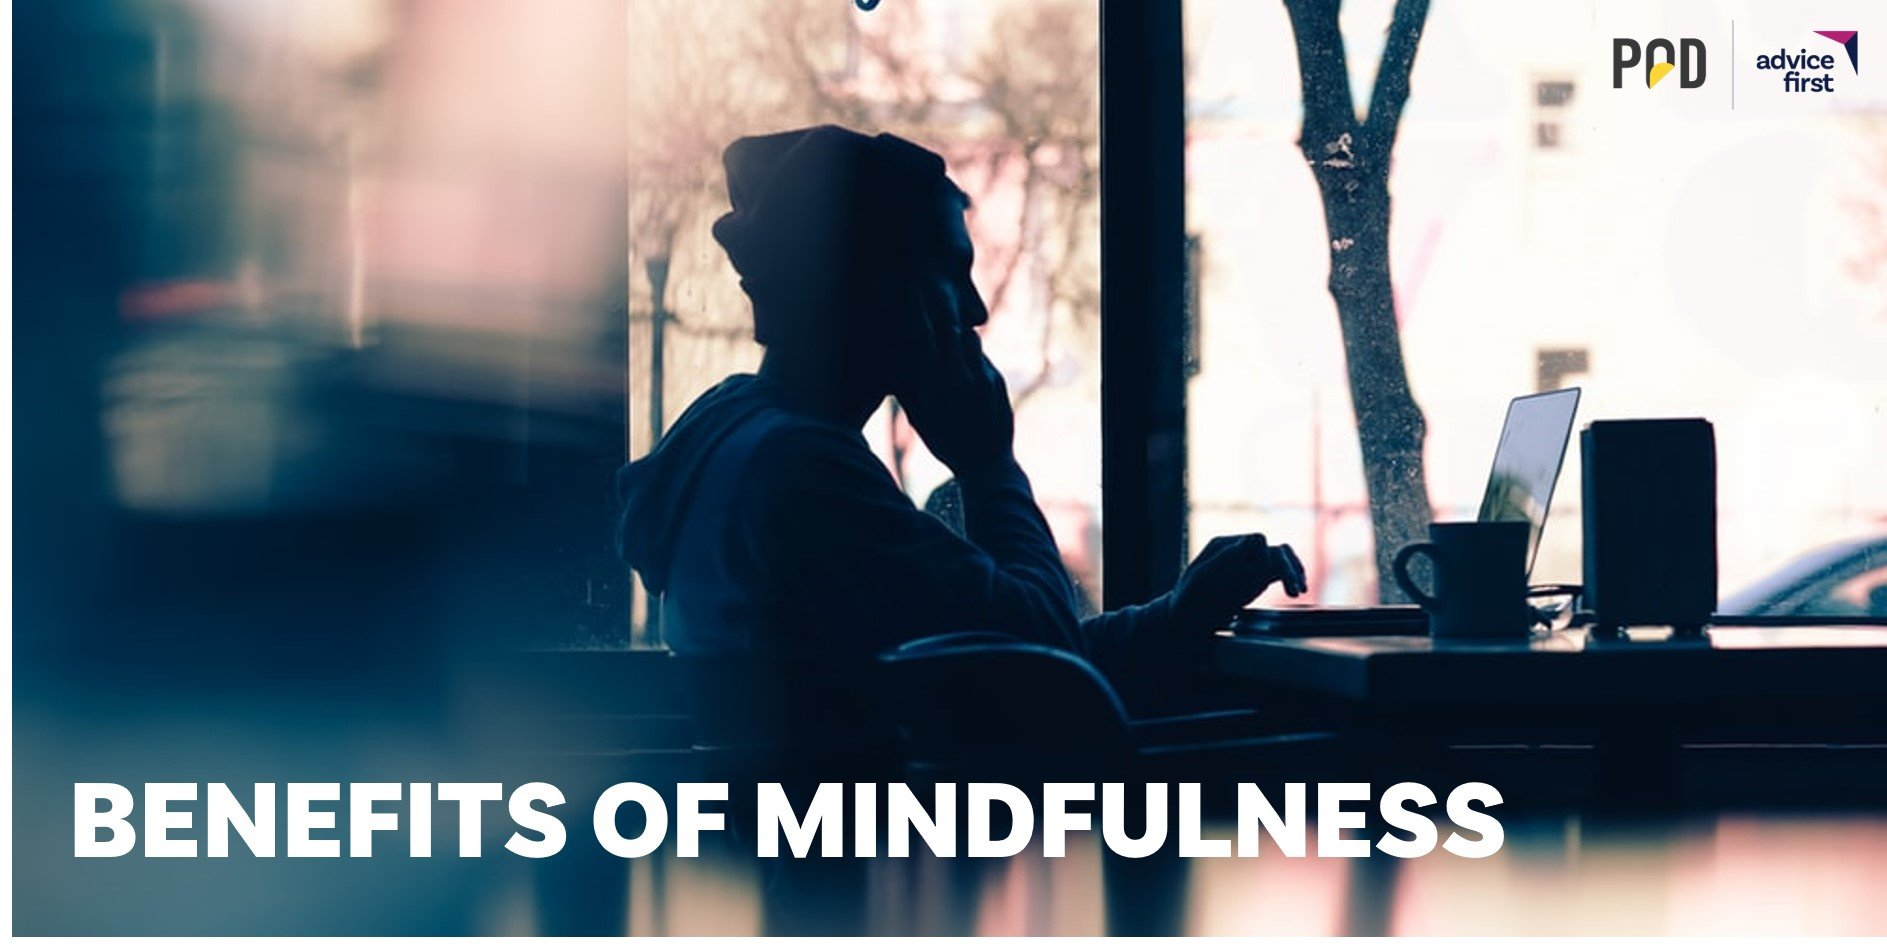 Benefits of Minfulness 1 - Benefits of Mindfulness